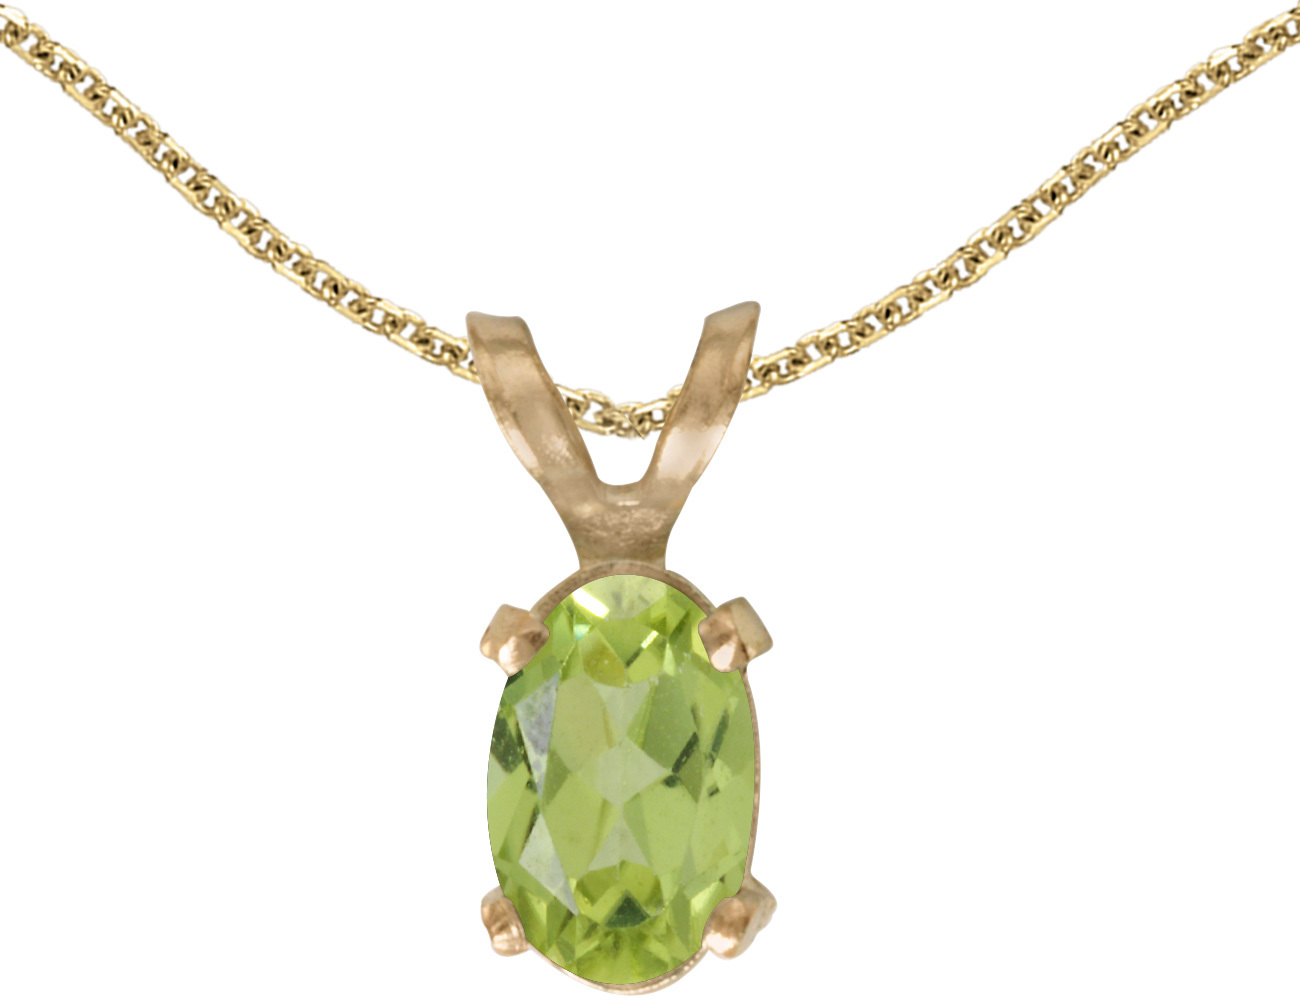 14k Yellow Gold Oval Peridot Pendant (Chain NOT included)